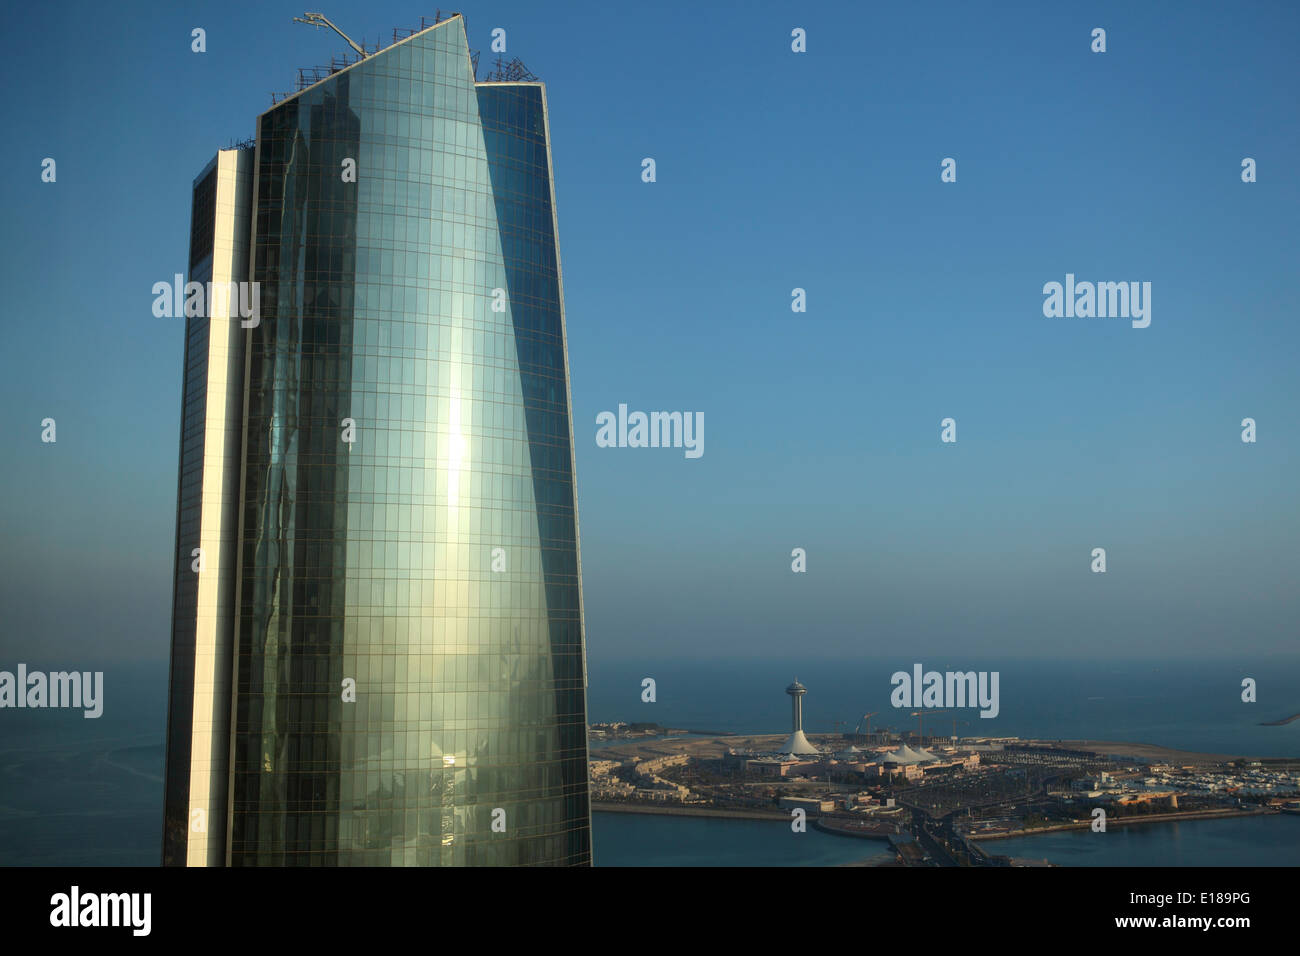 One of the Etihad Towers in Abu Dhabi. - Stock Image